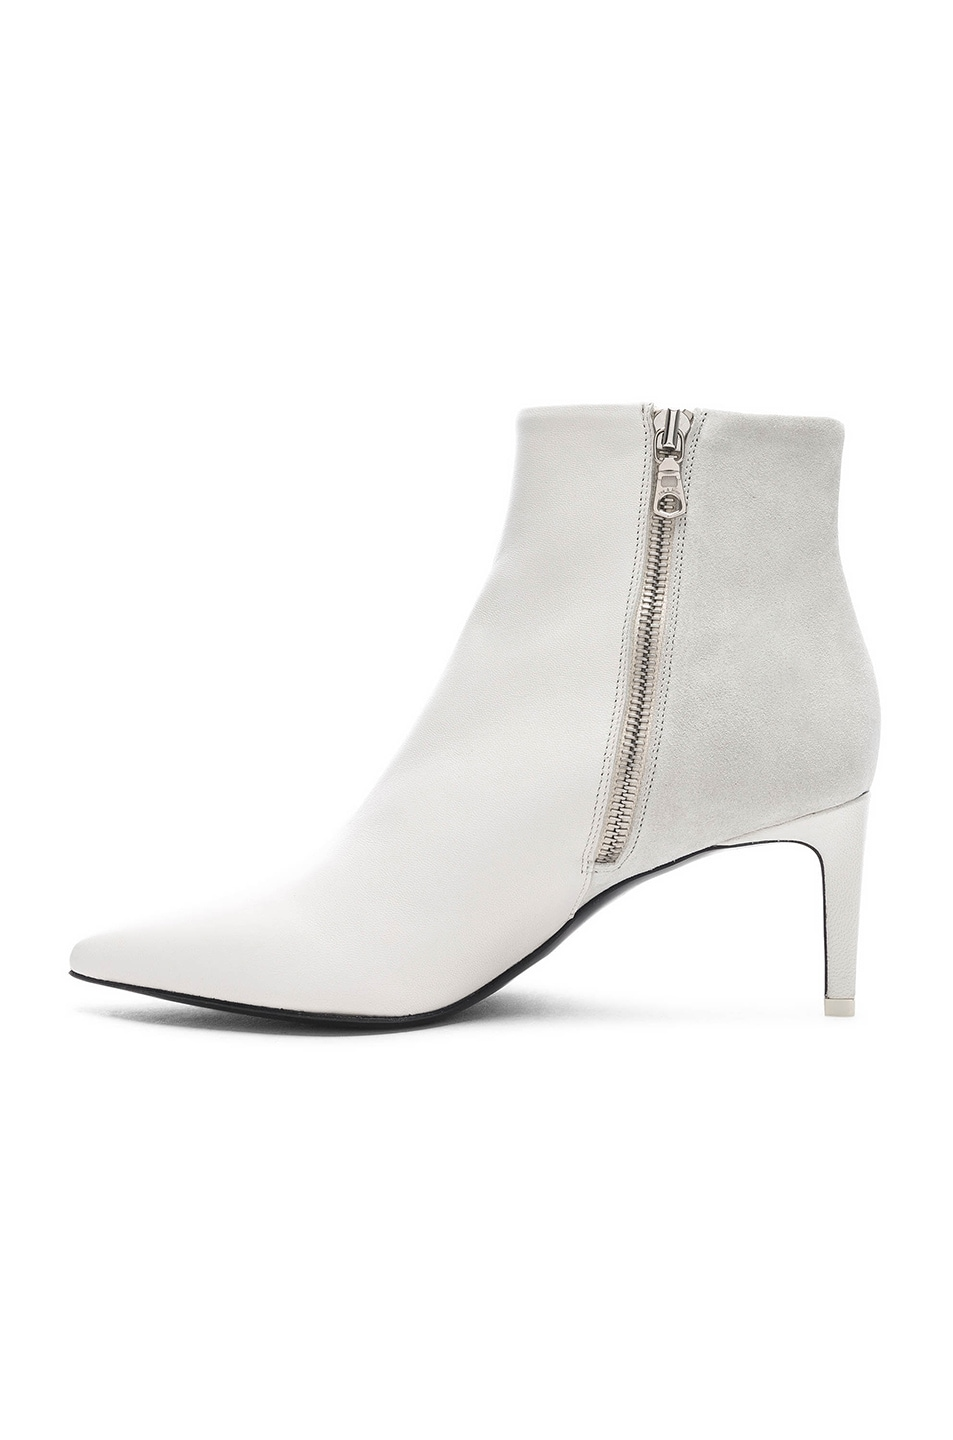 Image 5 of Rag & Bone Leather Beha Boots in White